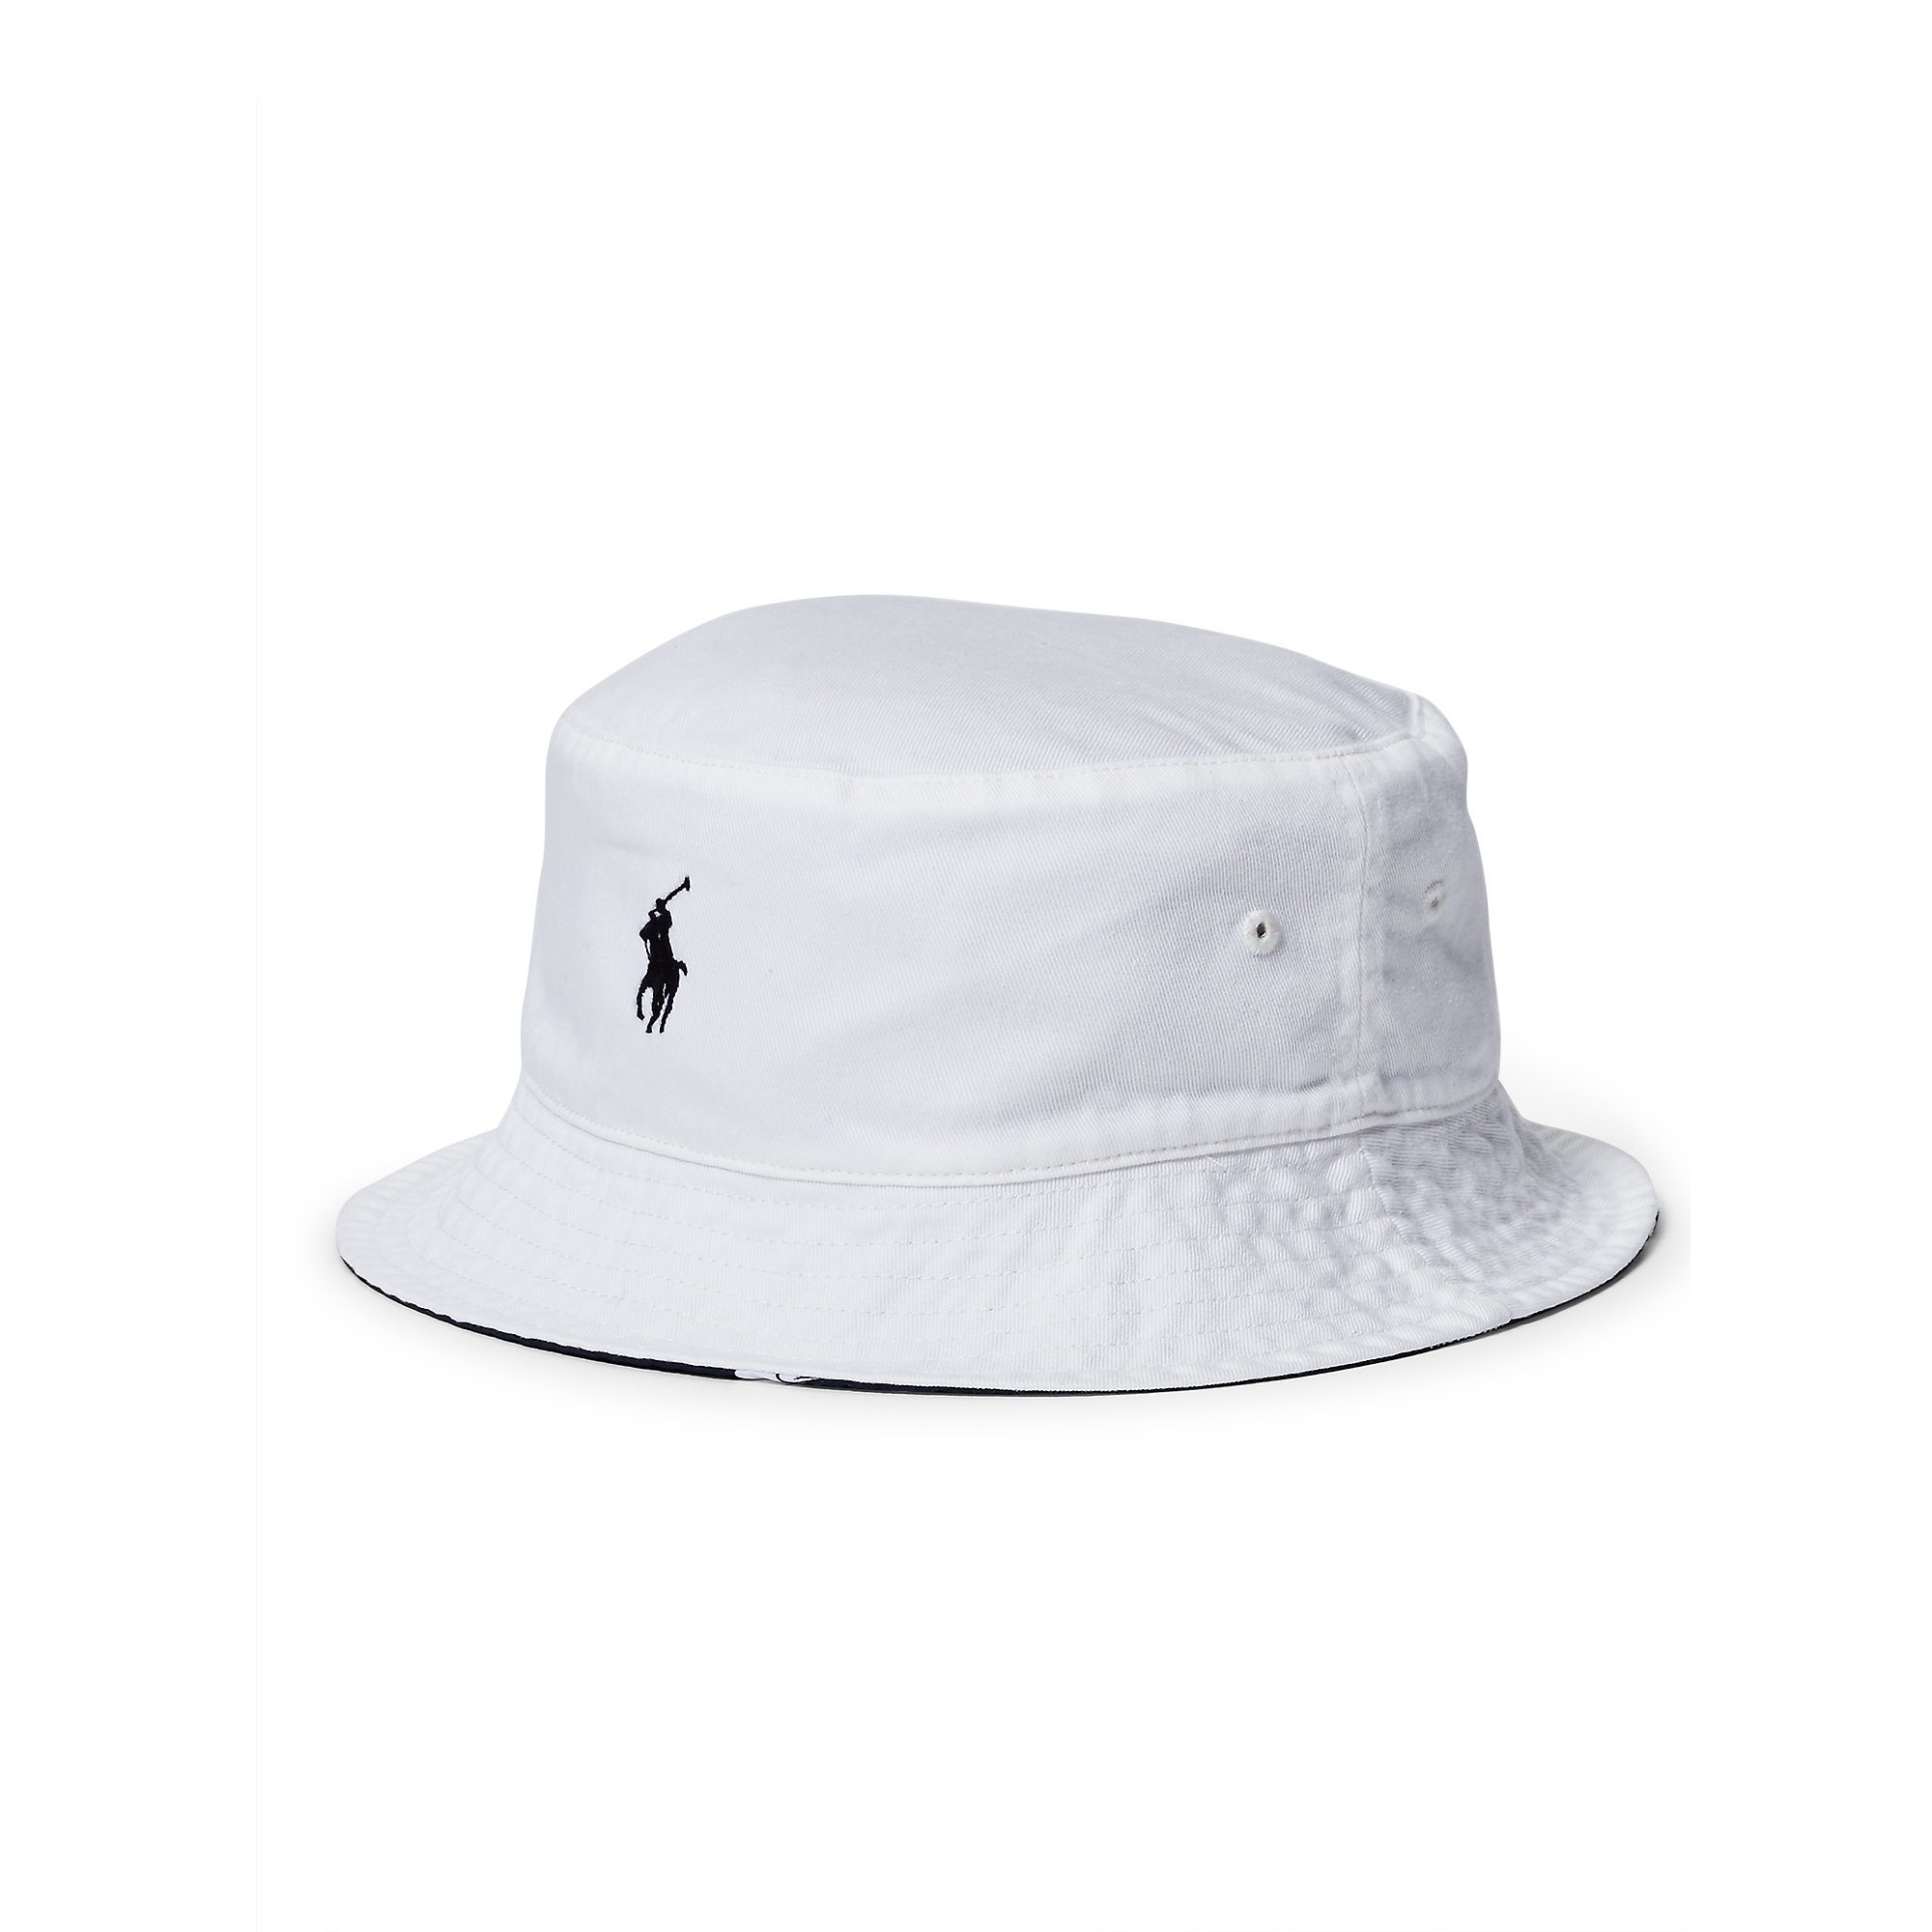 838bc3eed1694 Polo Ralph Lauren Reversible Twill Bucket Hat in White for Men - Lyst